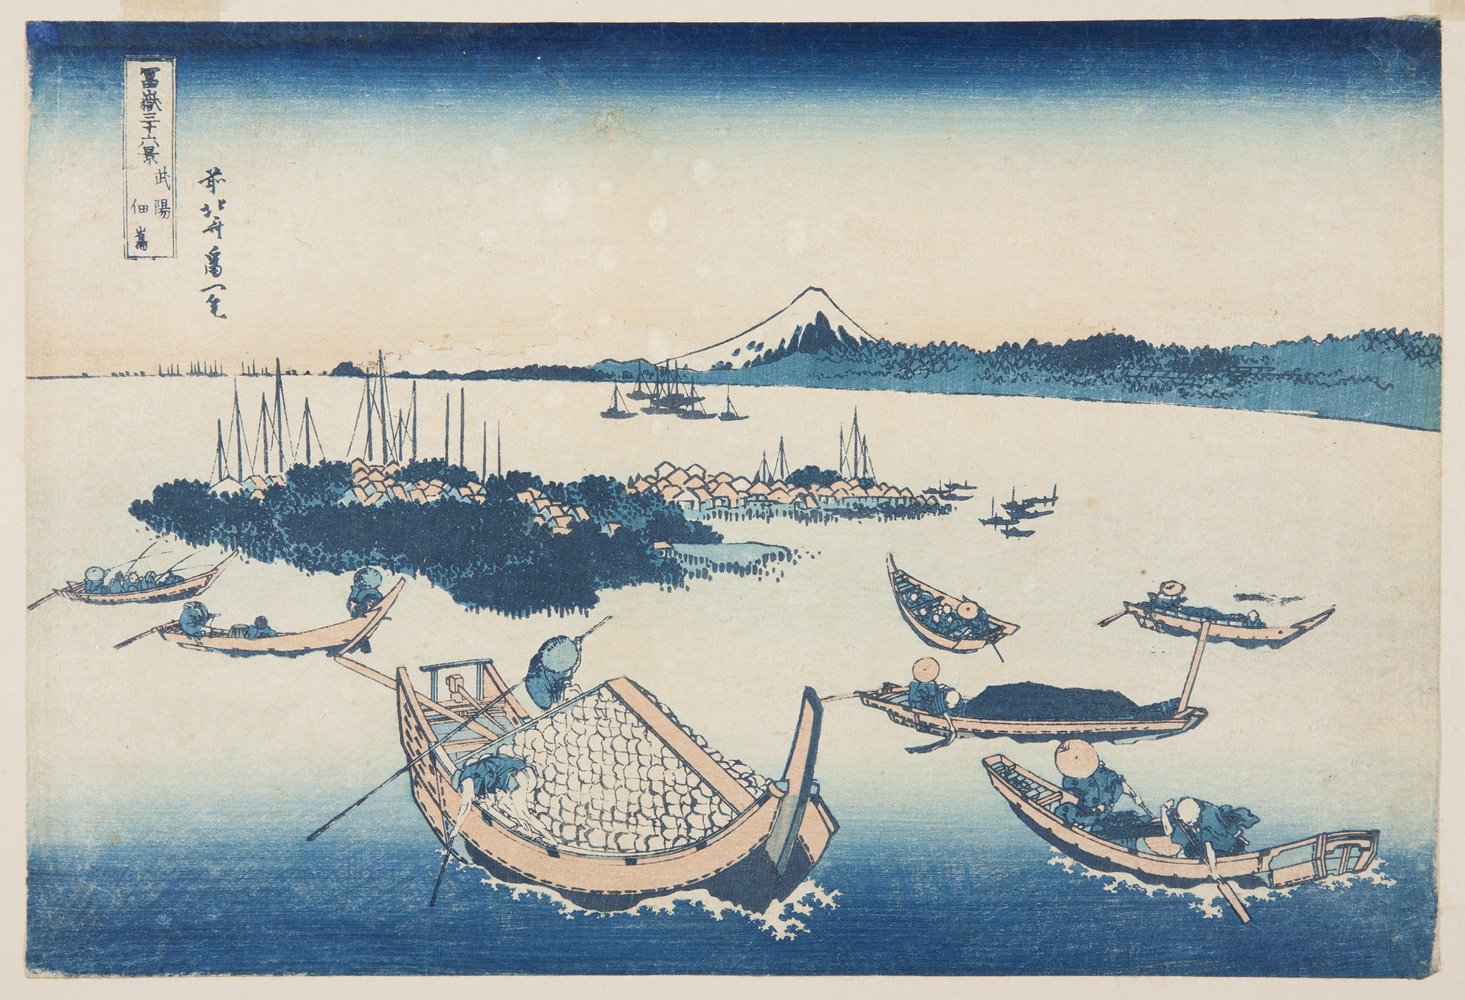 Japanese print of a seascape. Boats sail on the water. A wooded island in the middle with many small buildings. On the horizon Mount Fuji rises up from the shoreline.